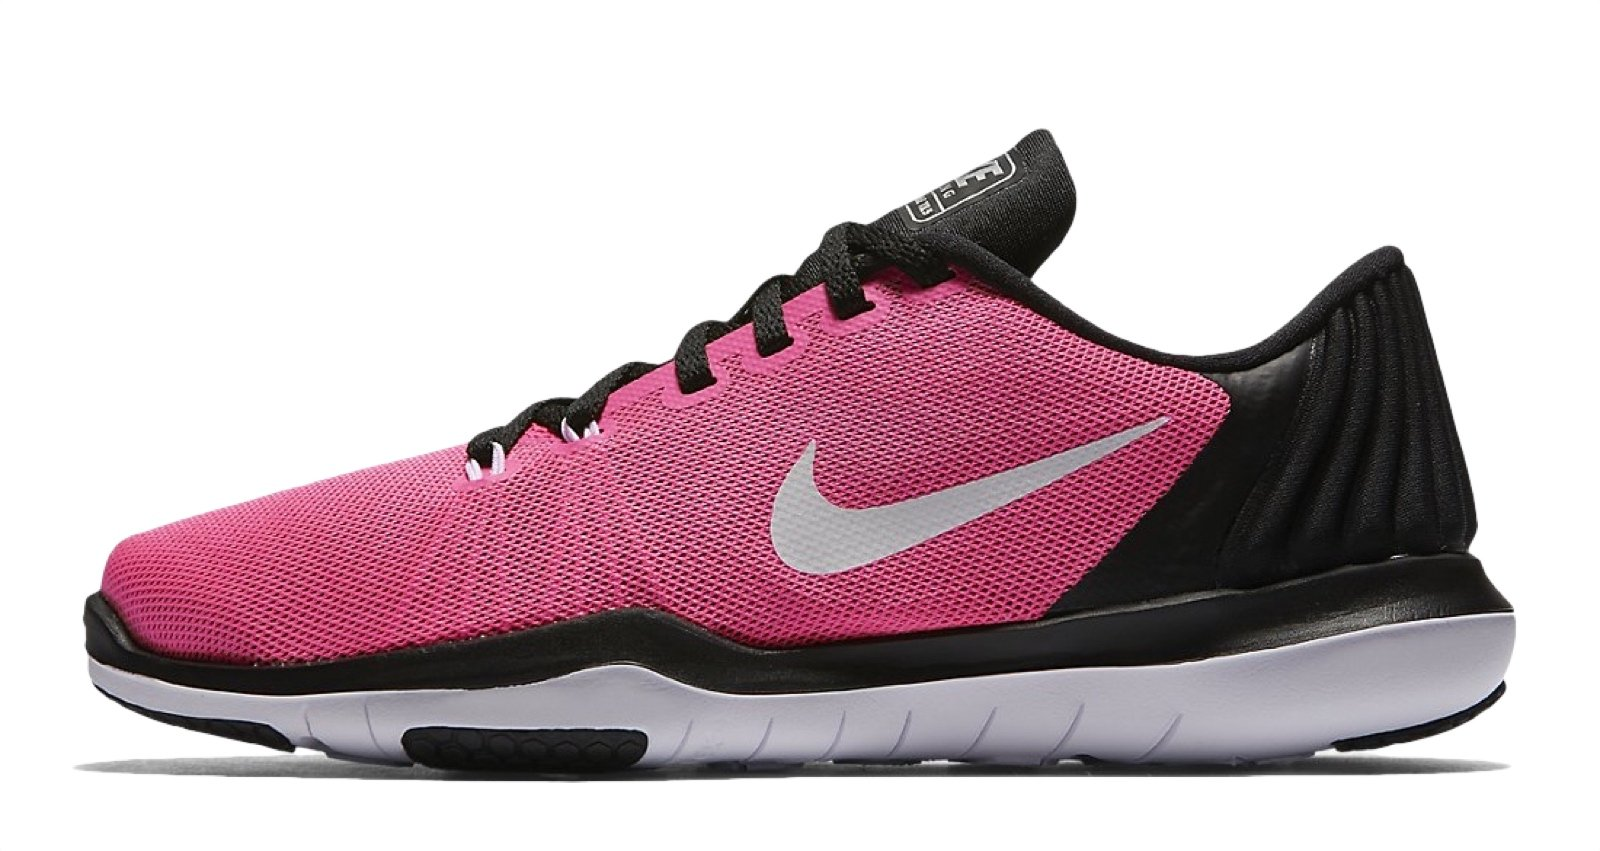 New Nike Girl's Flex Supreme TR 5 Athletic Shoe Pink/Black/White 5.5